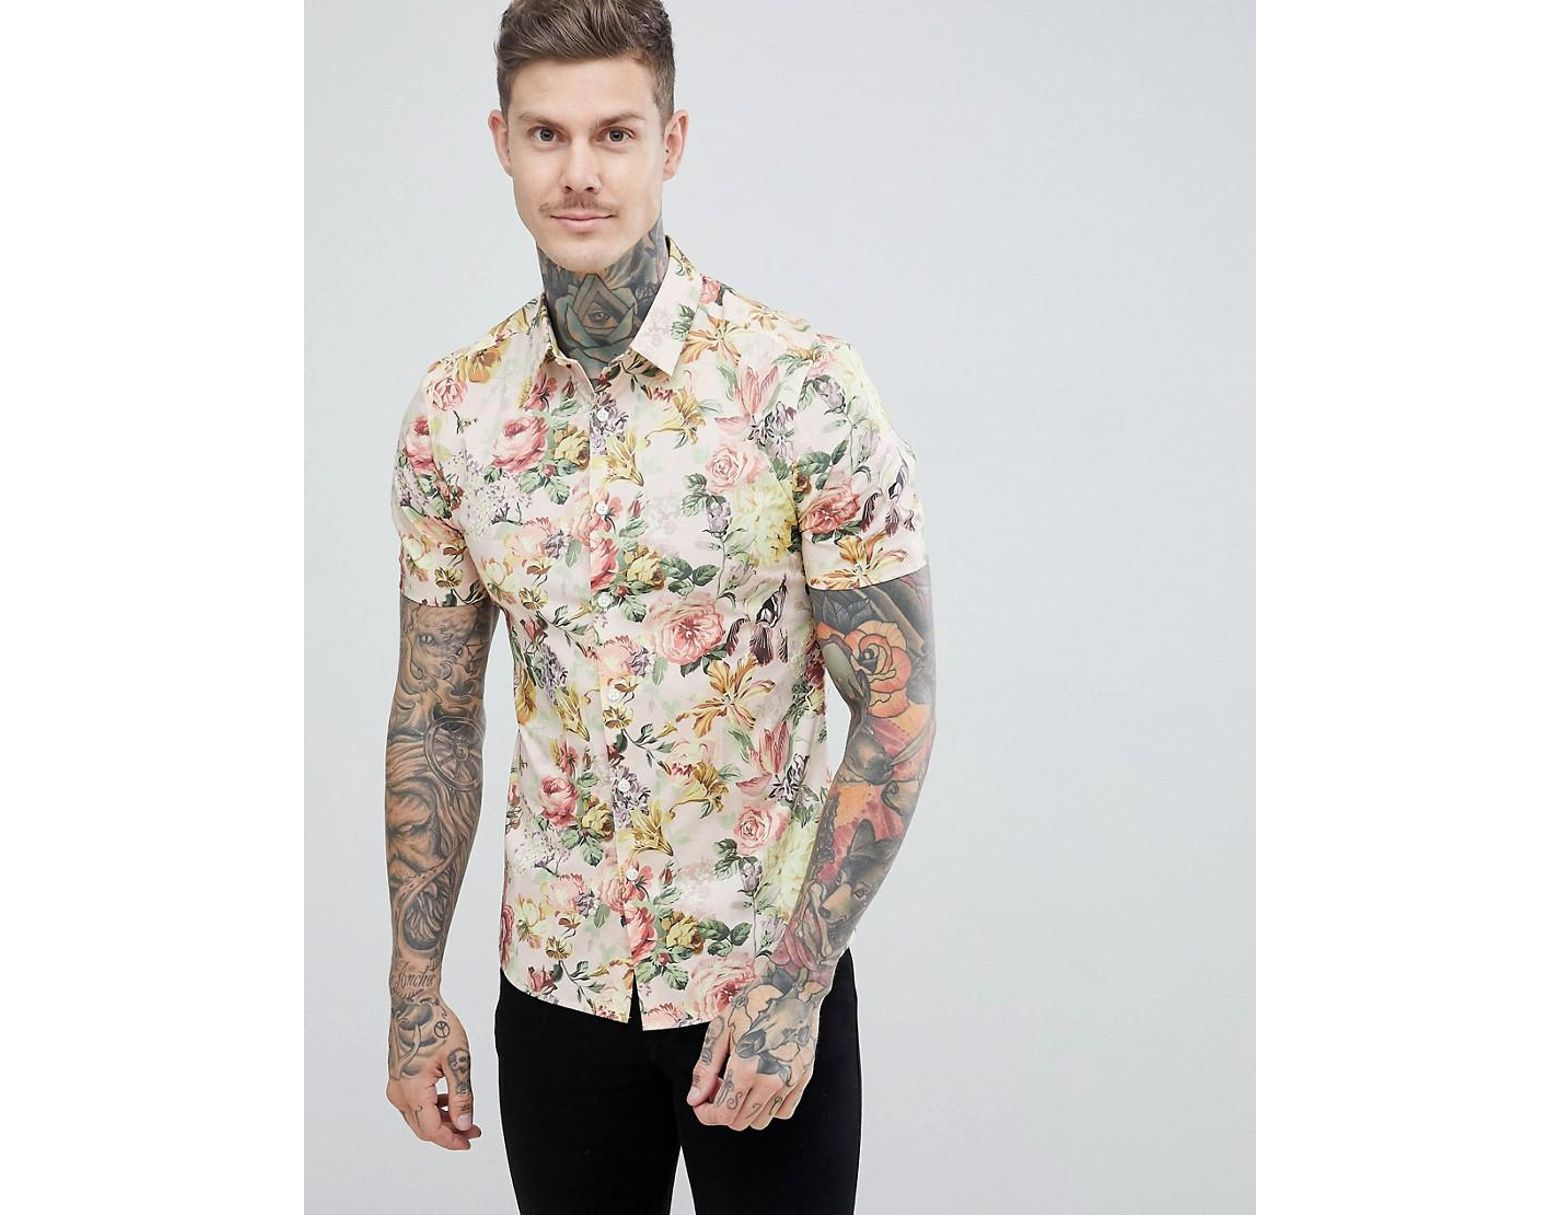 d13e4c1a ASOS Skinny Floral Printed Shirt in White for Men - Lyst